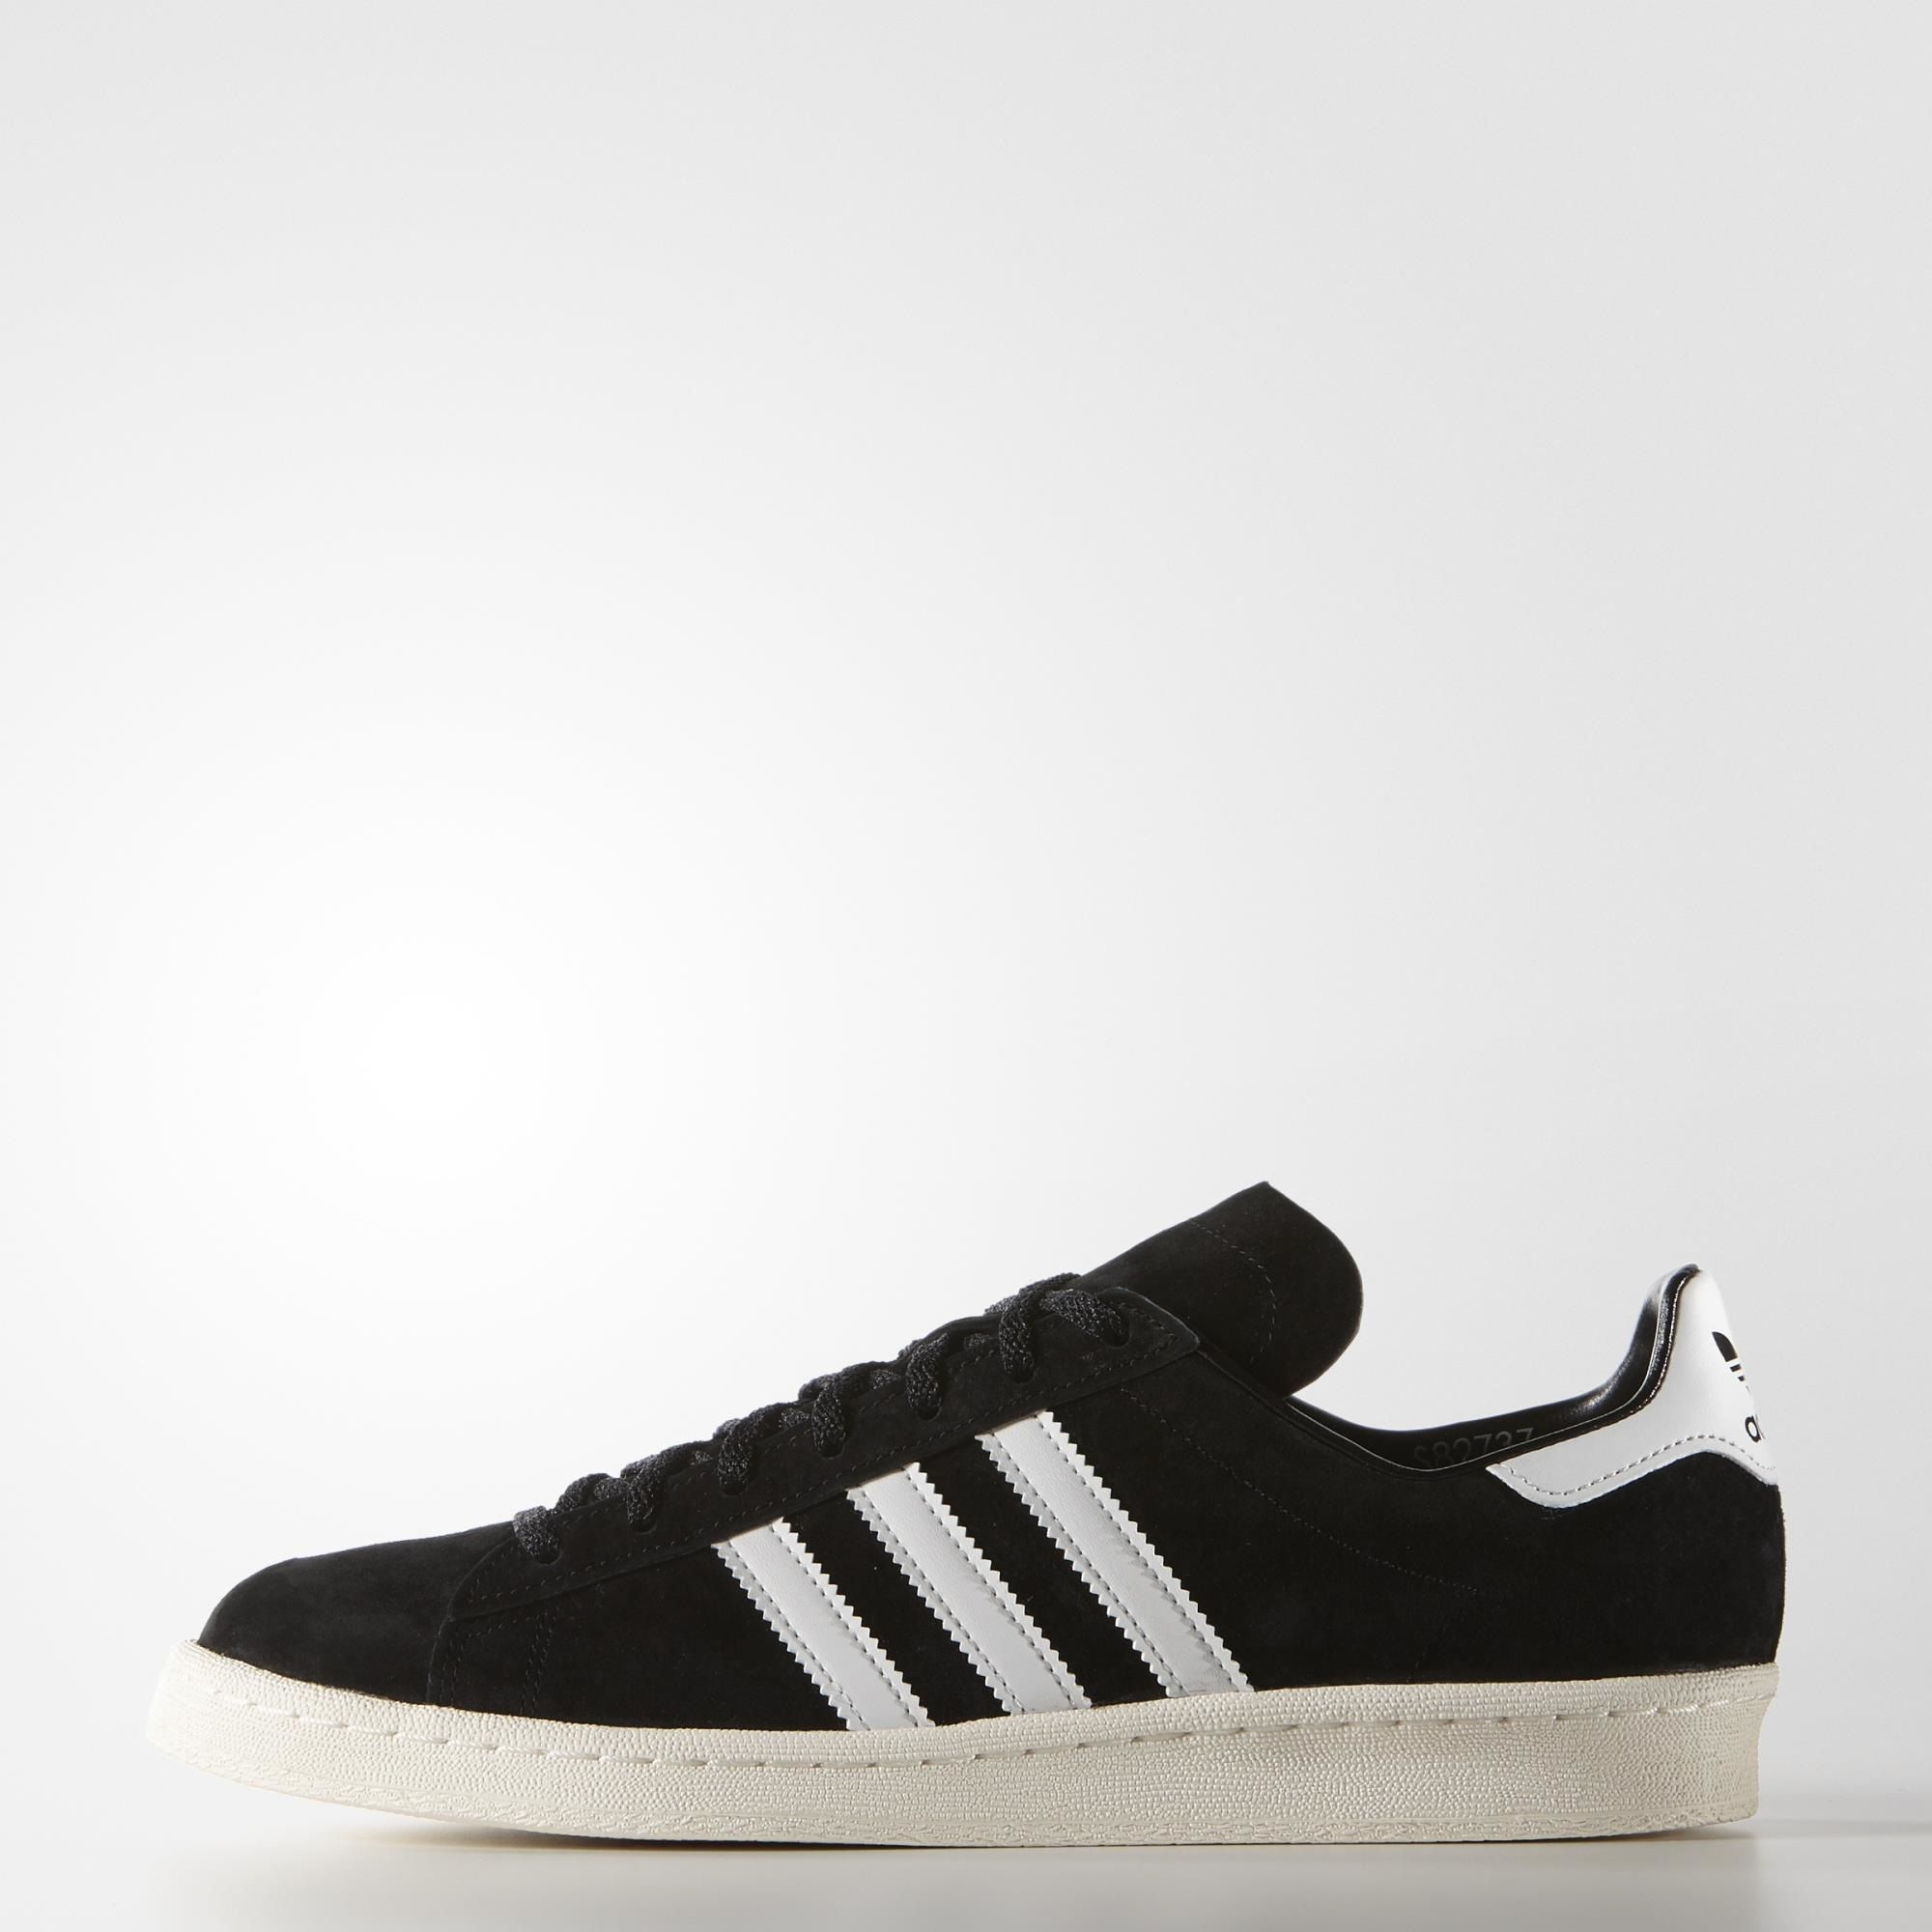 adidas campus 80s leather shoes